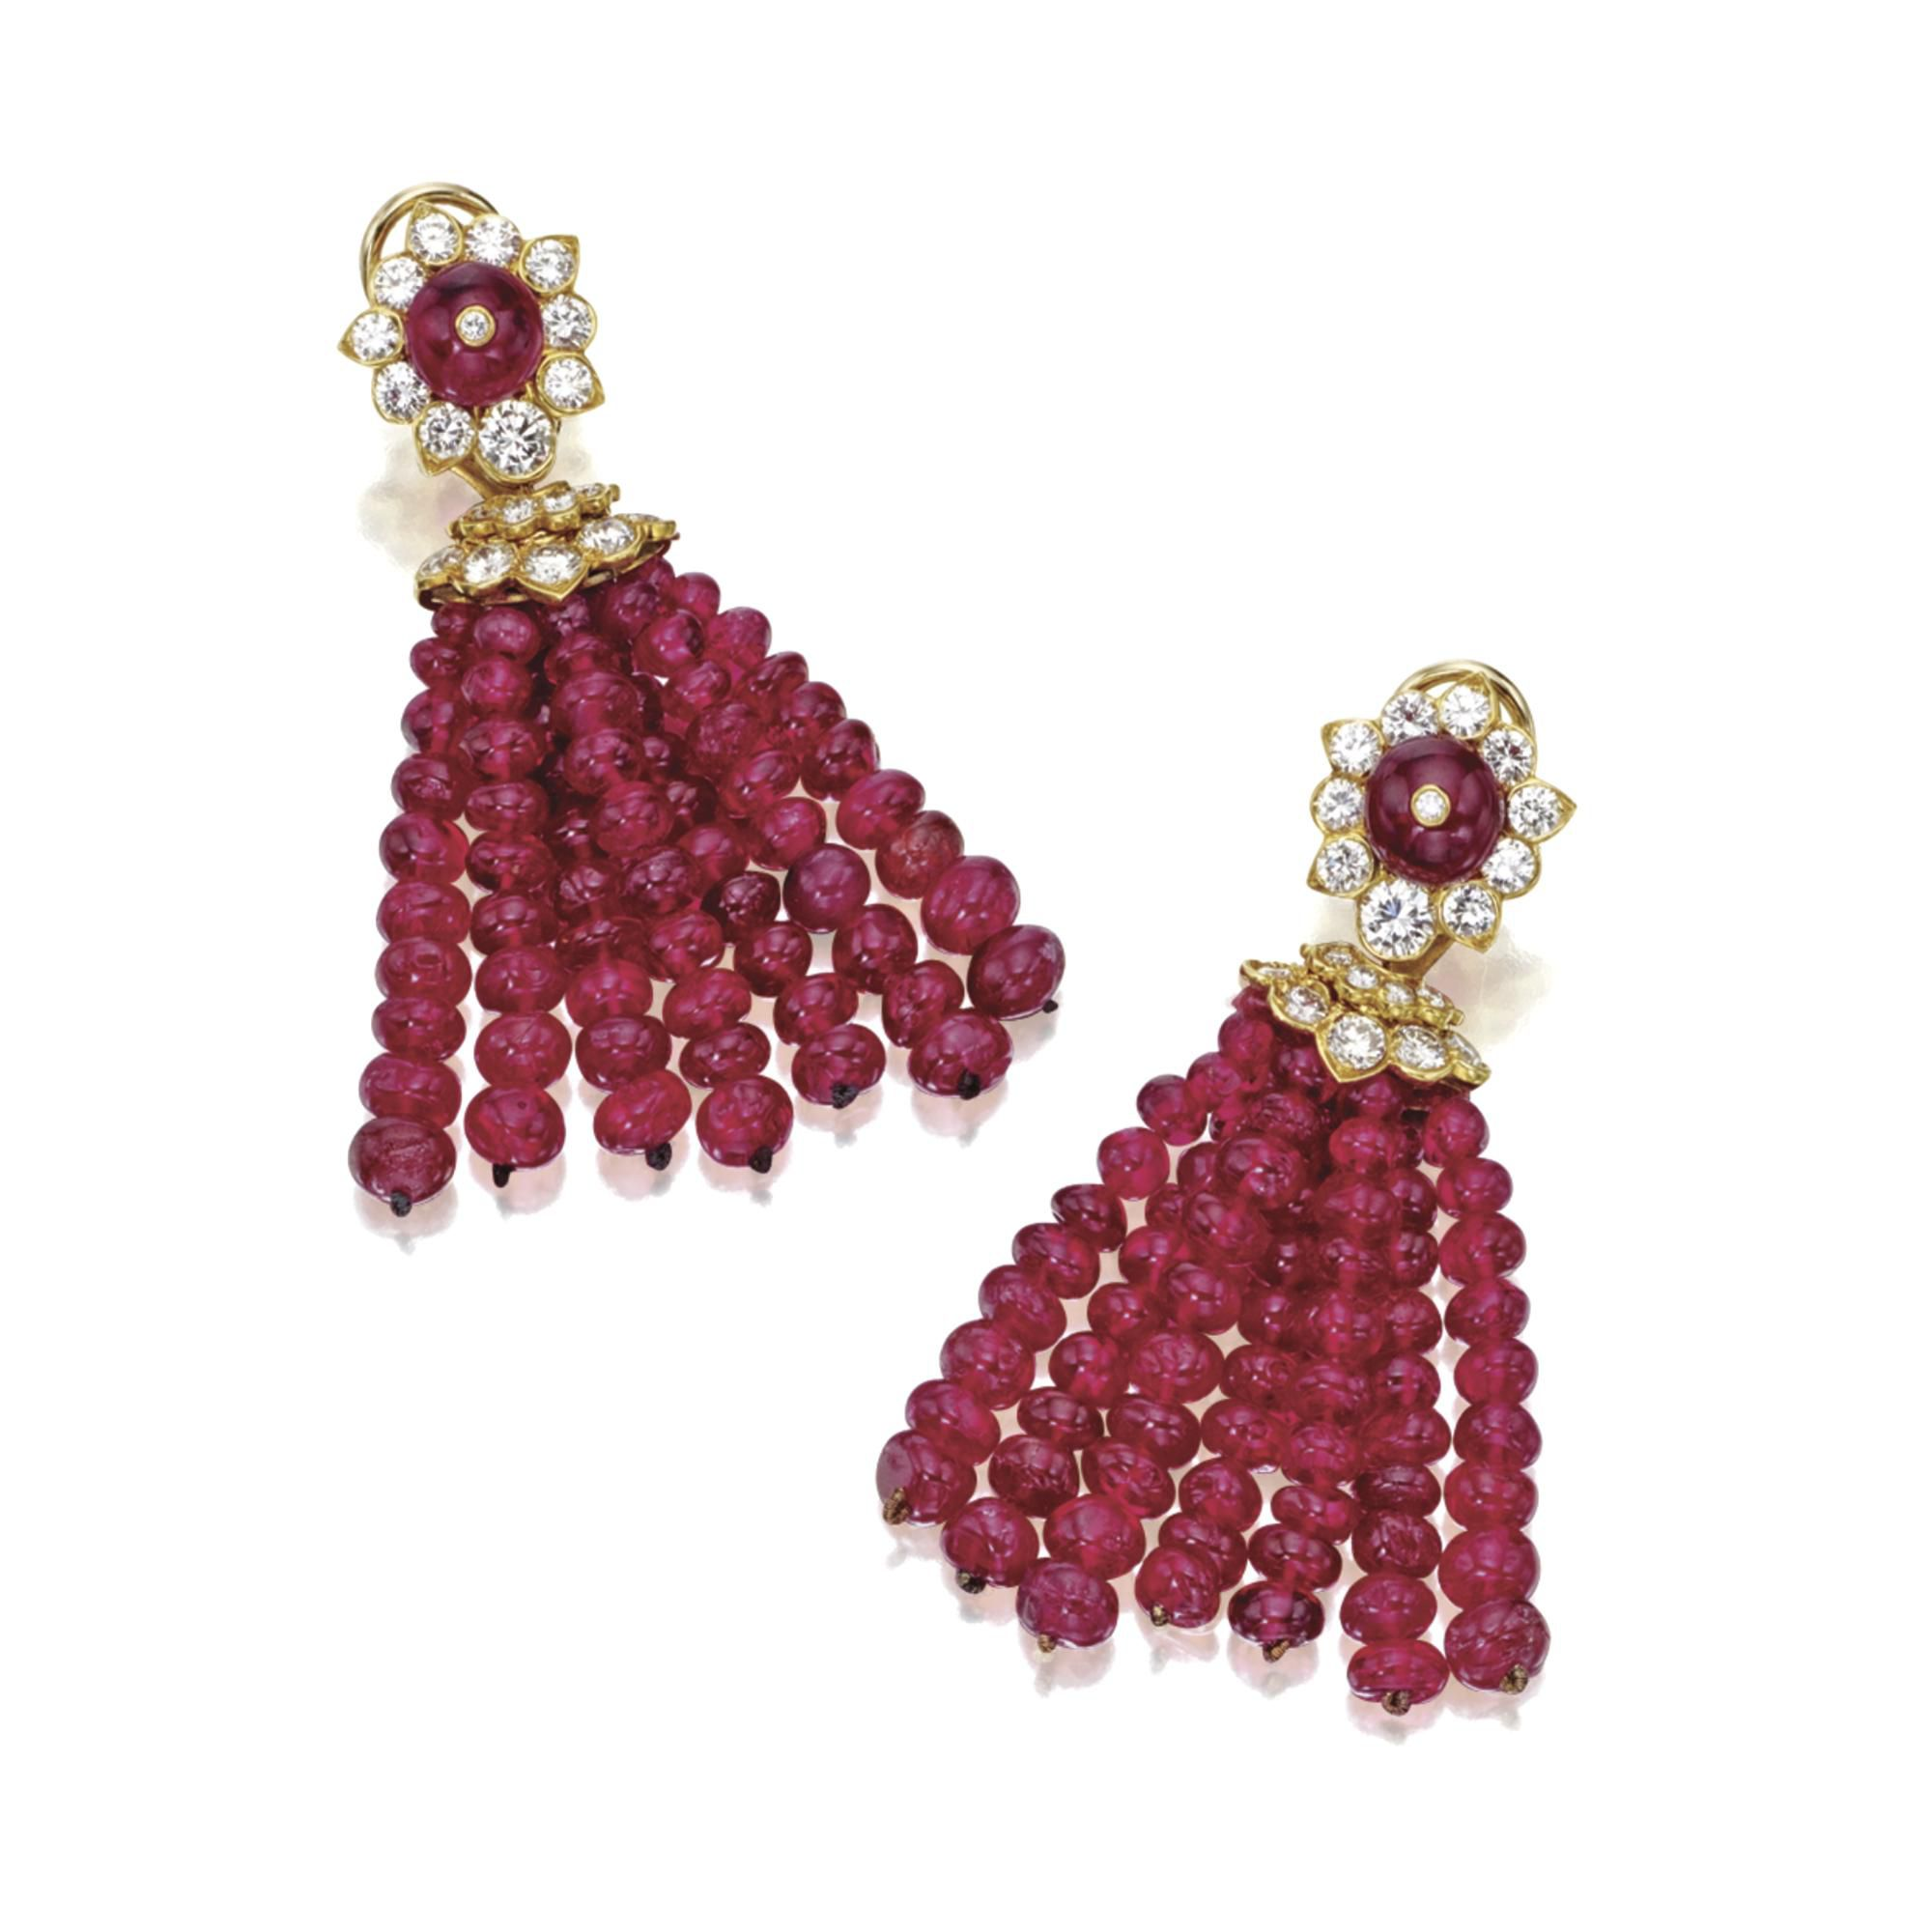 Van cleef amp arpels vca 18k yellow gold ruby cabochon amp diamond - Pair Of Ruby Bead And Diamond Tassel Earclips Van Cleef Arpels New York